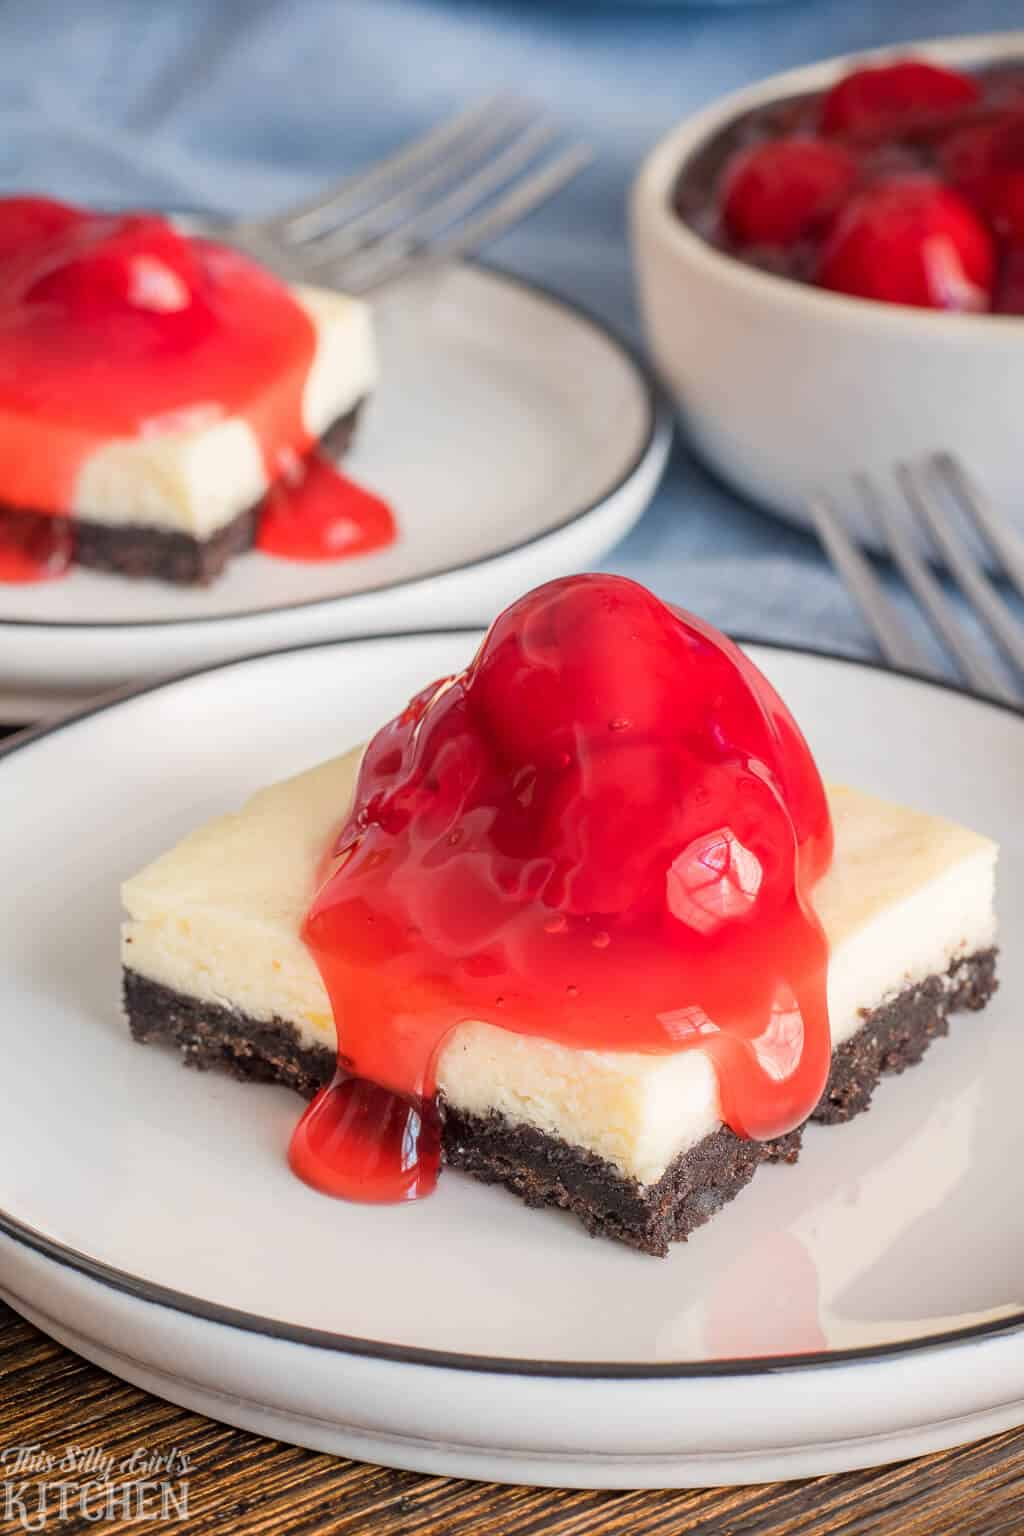 Easy Cherry #Cheesecake Bars, silky cheesecake on an addictive #Oreo crust, topped with cherries! #Recipe from ThisSillyGirlsKitchen.com #cherrycheesecake #cheesecakebars #dessert